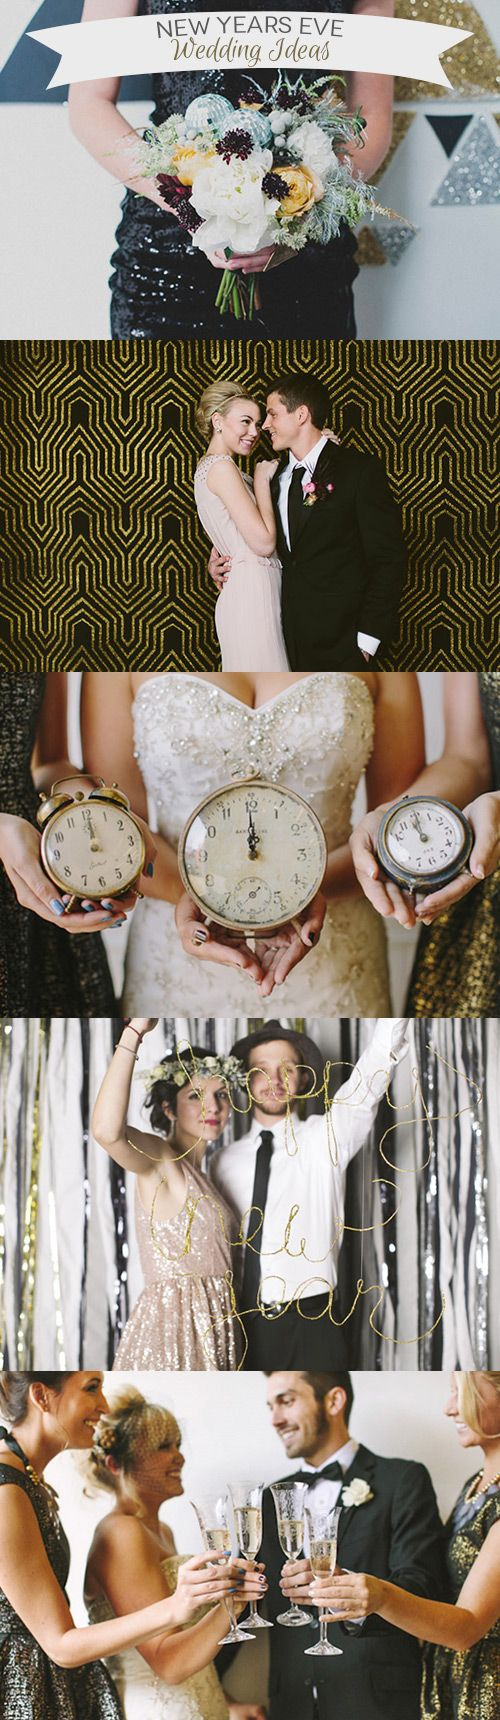 17 Simply Stylish New Years Eve Wedding Ideas | Simple ways to make your New Years Eve wedding sparkle | www.onefabday.com: